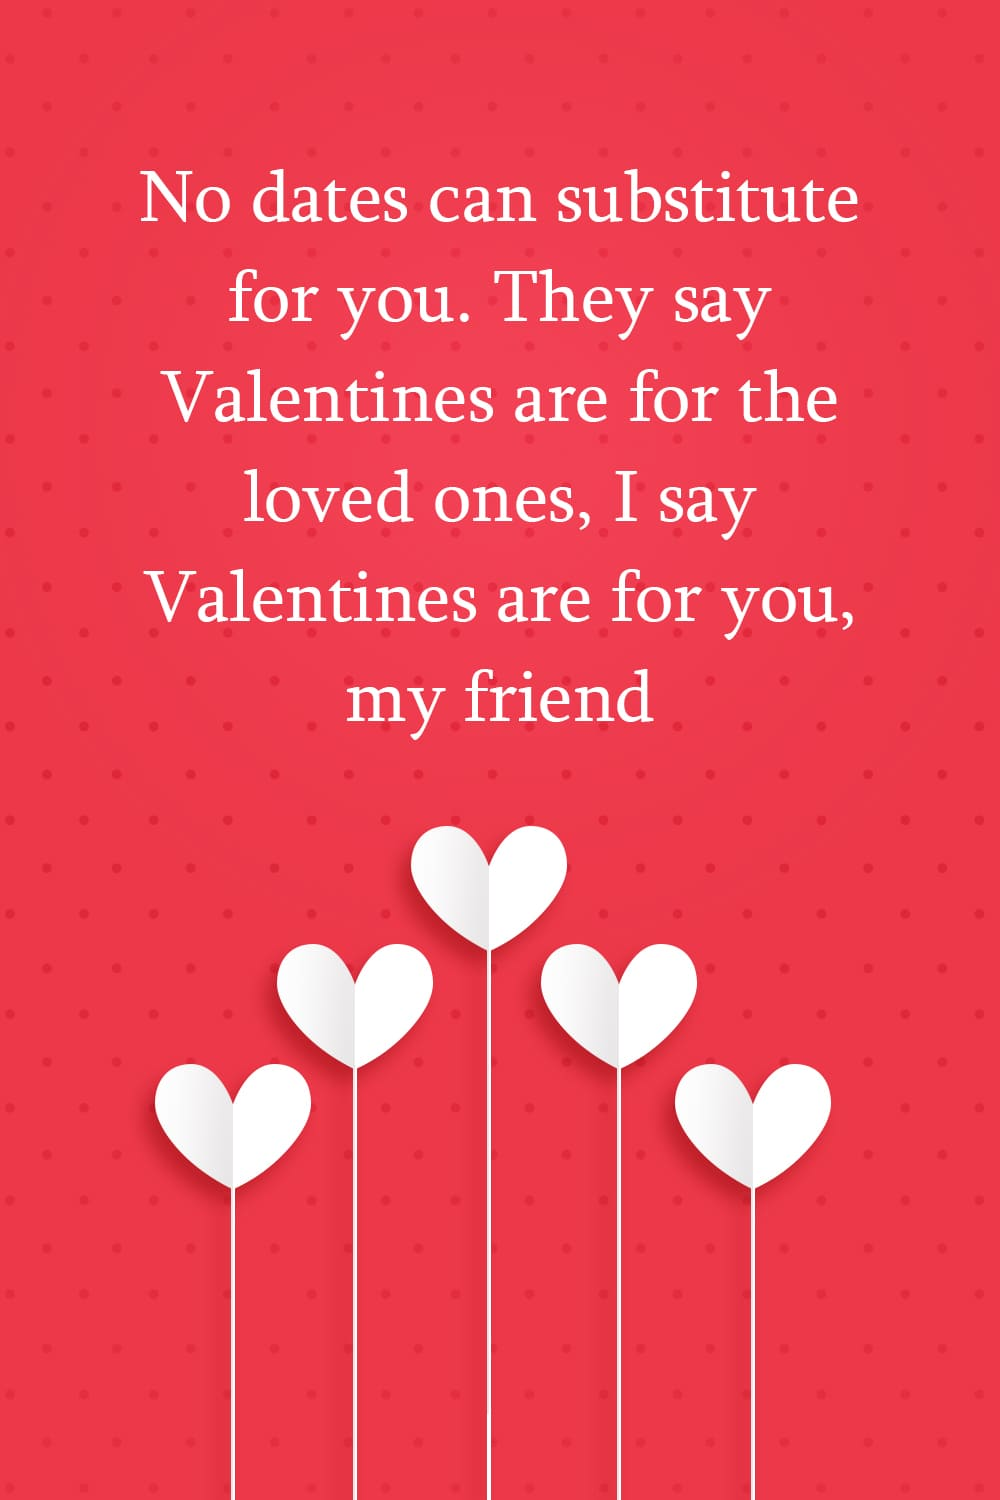 No dates can substitute for you. They say Valentines are for the loved ones, I say Valentines are for you, my friend.